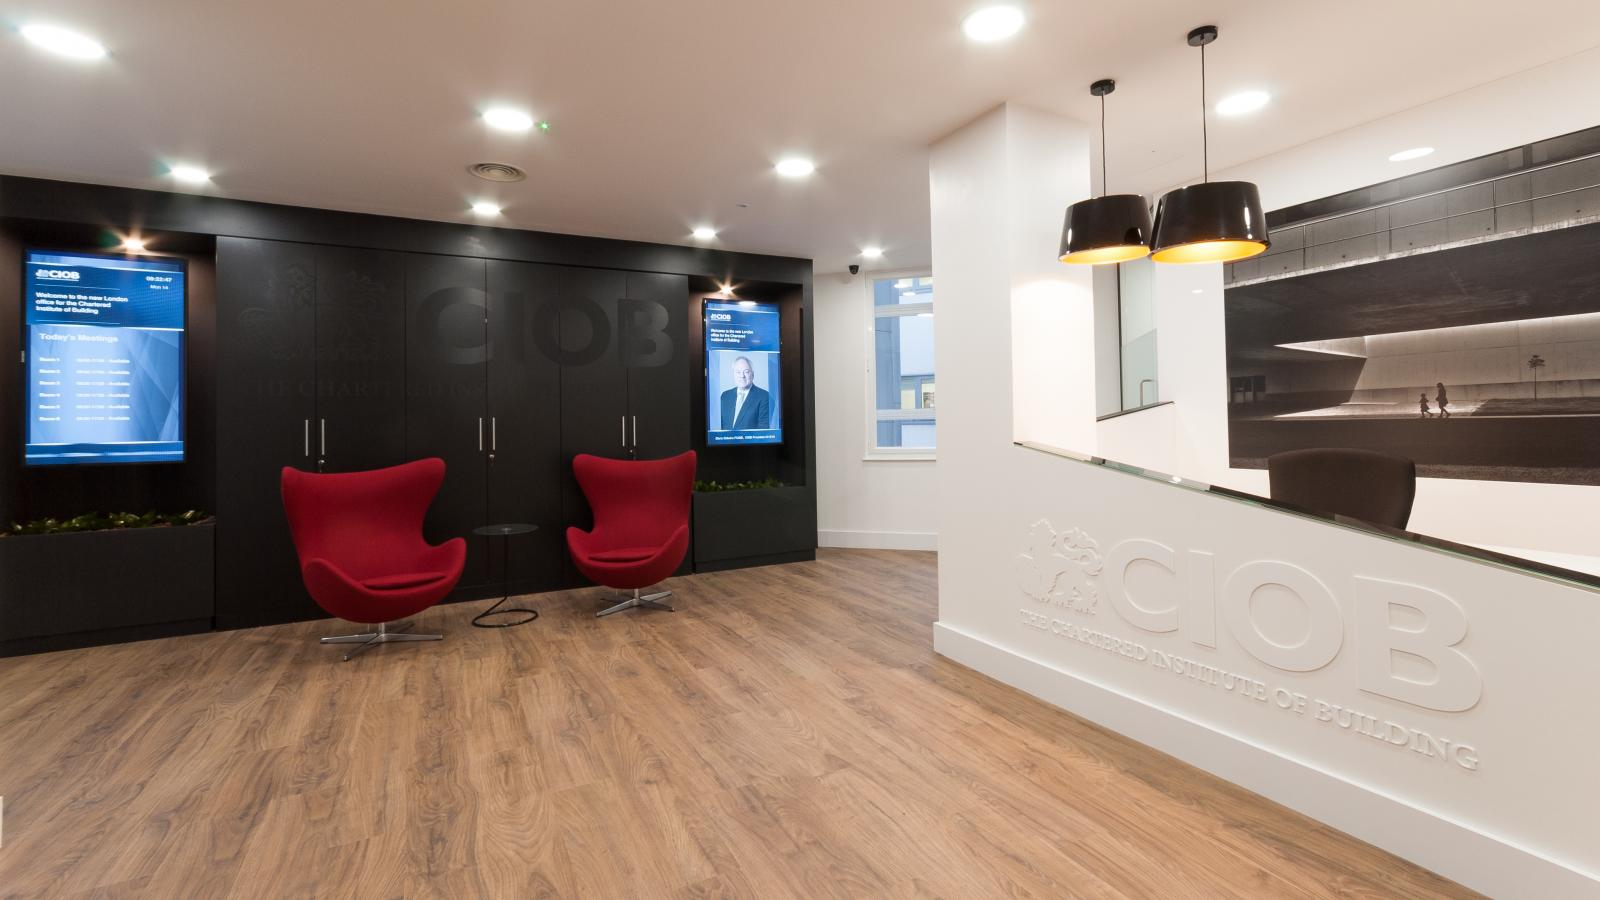 CIOB Reception and Client Waiting Area 1